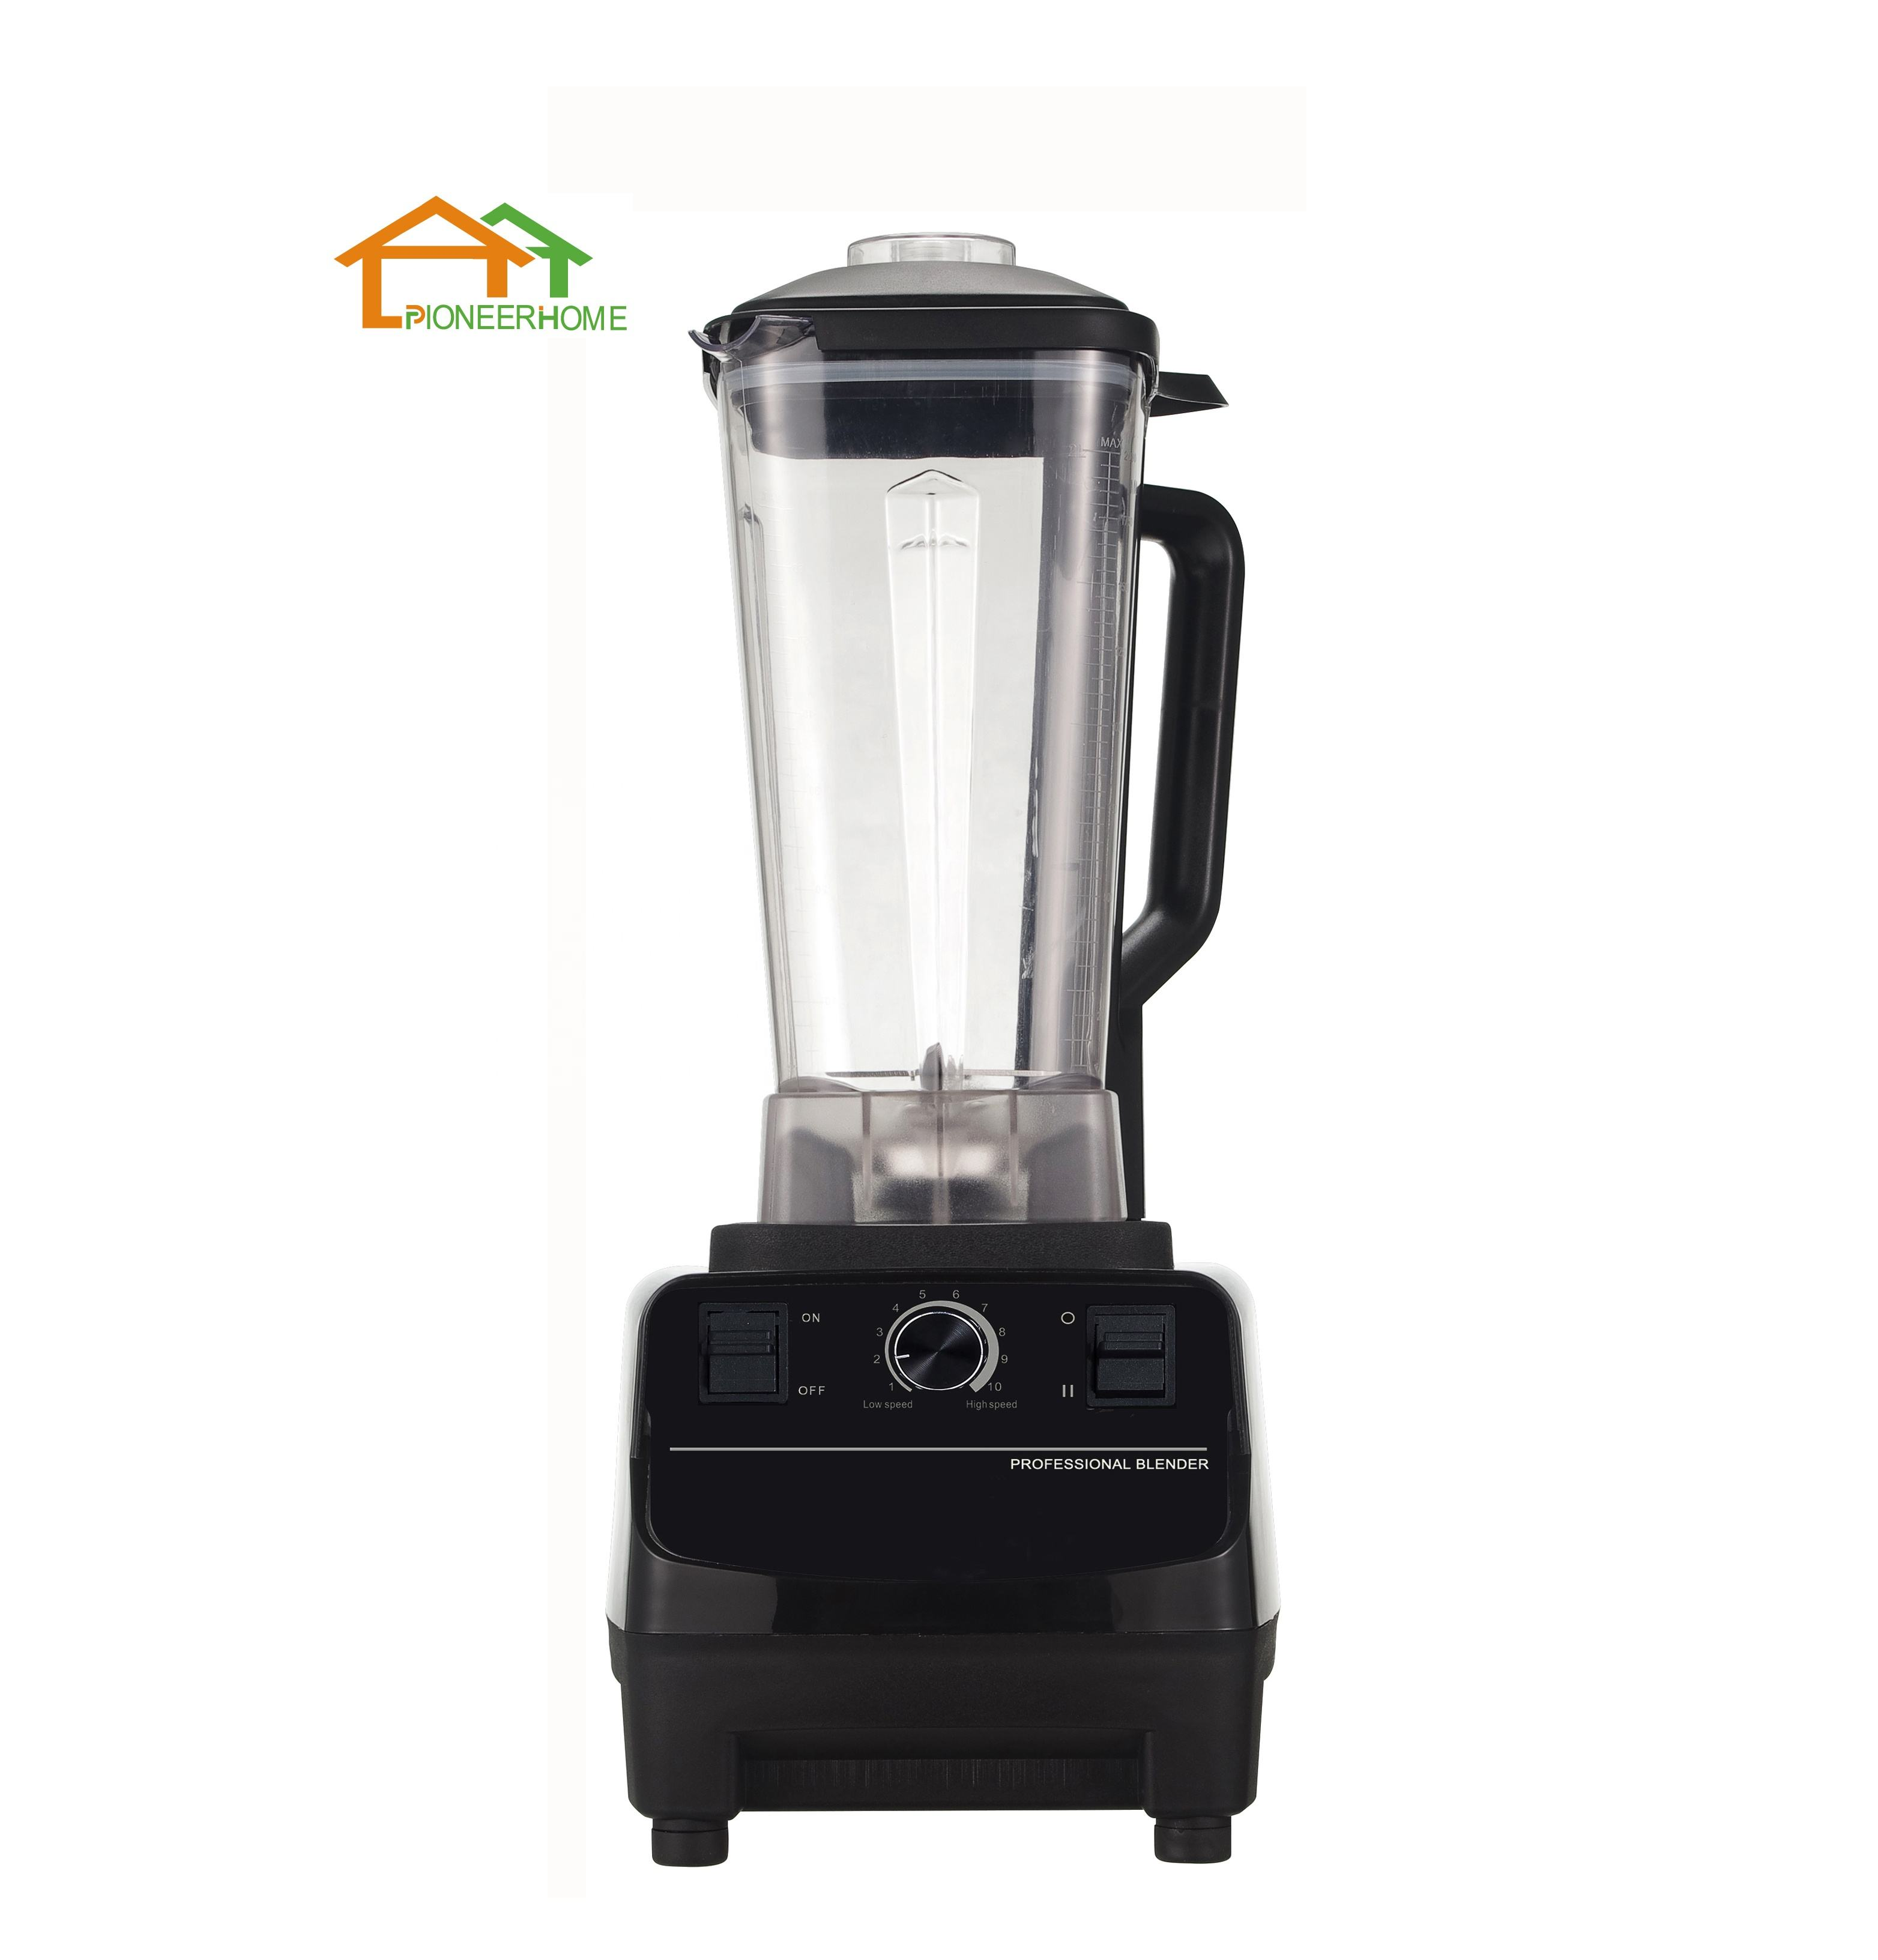 1500W 2L Volledig Koperen Motor High Speed Power Fruit Mixer Juicer commerciële blender